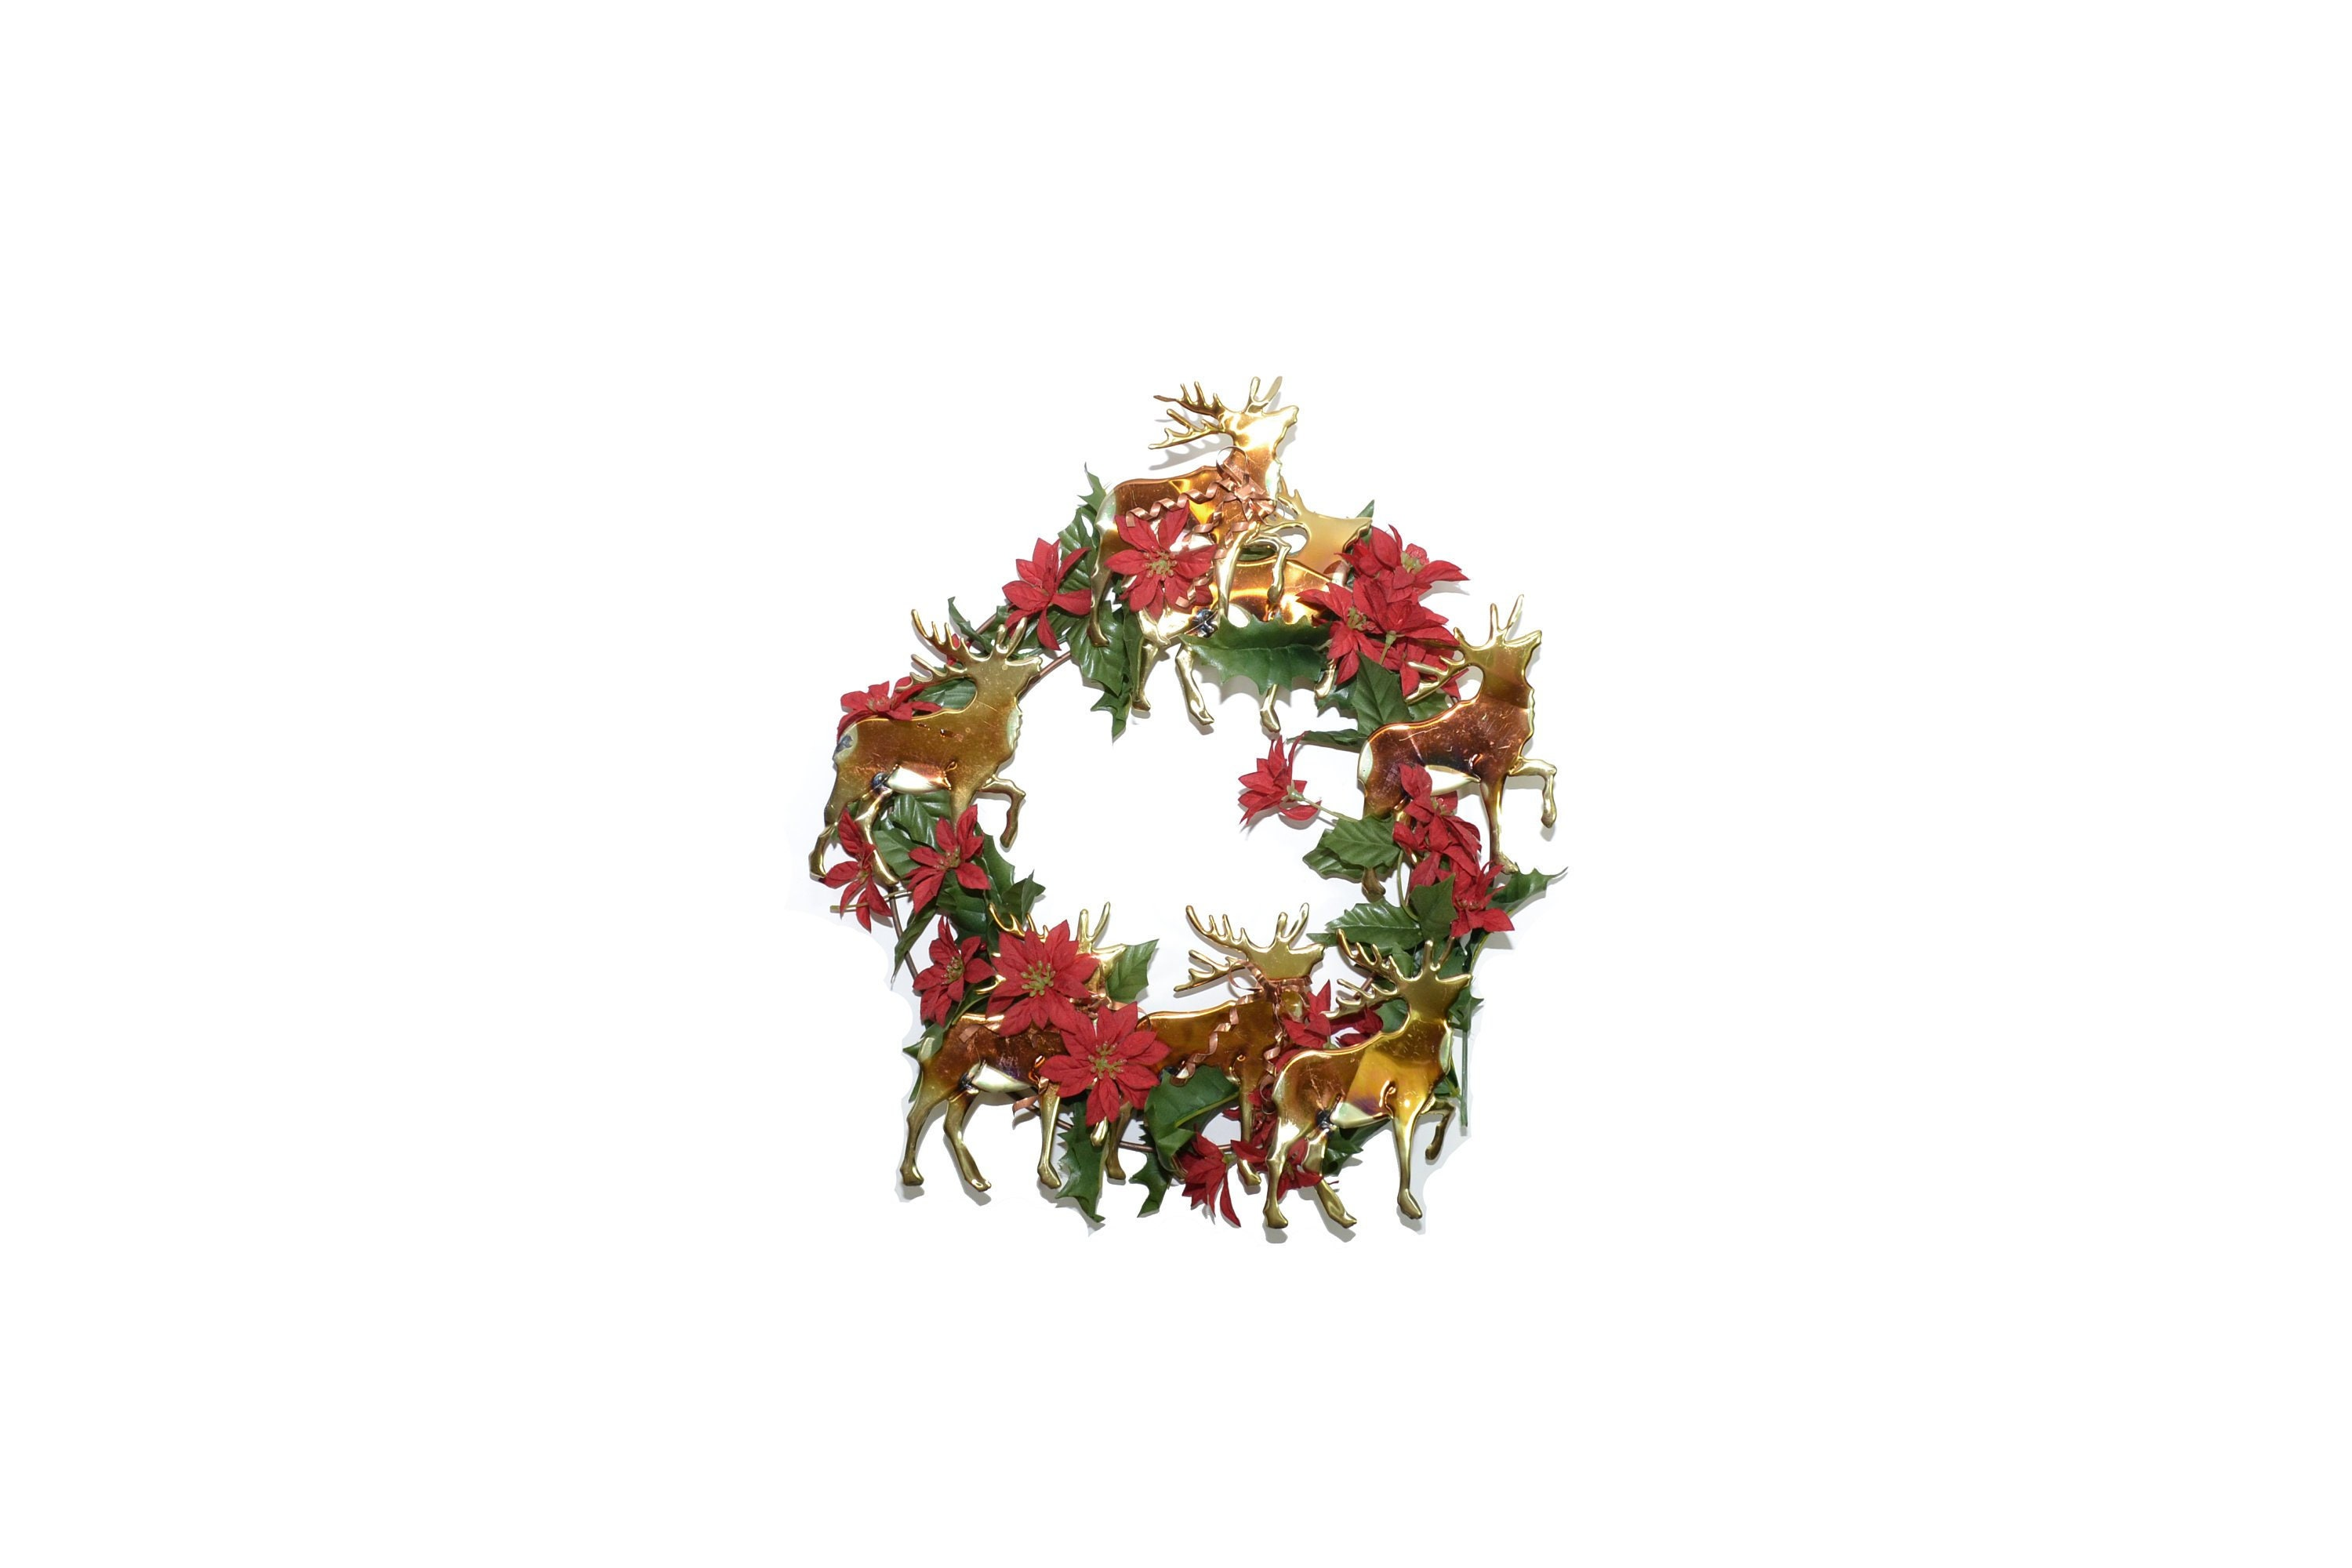 Vintage Metal Christmas Reindeer Wreath Poinsettia Wreath Christmas Wall Decor Gold And Red Wreath